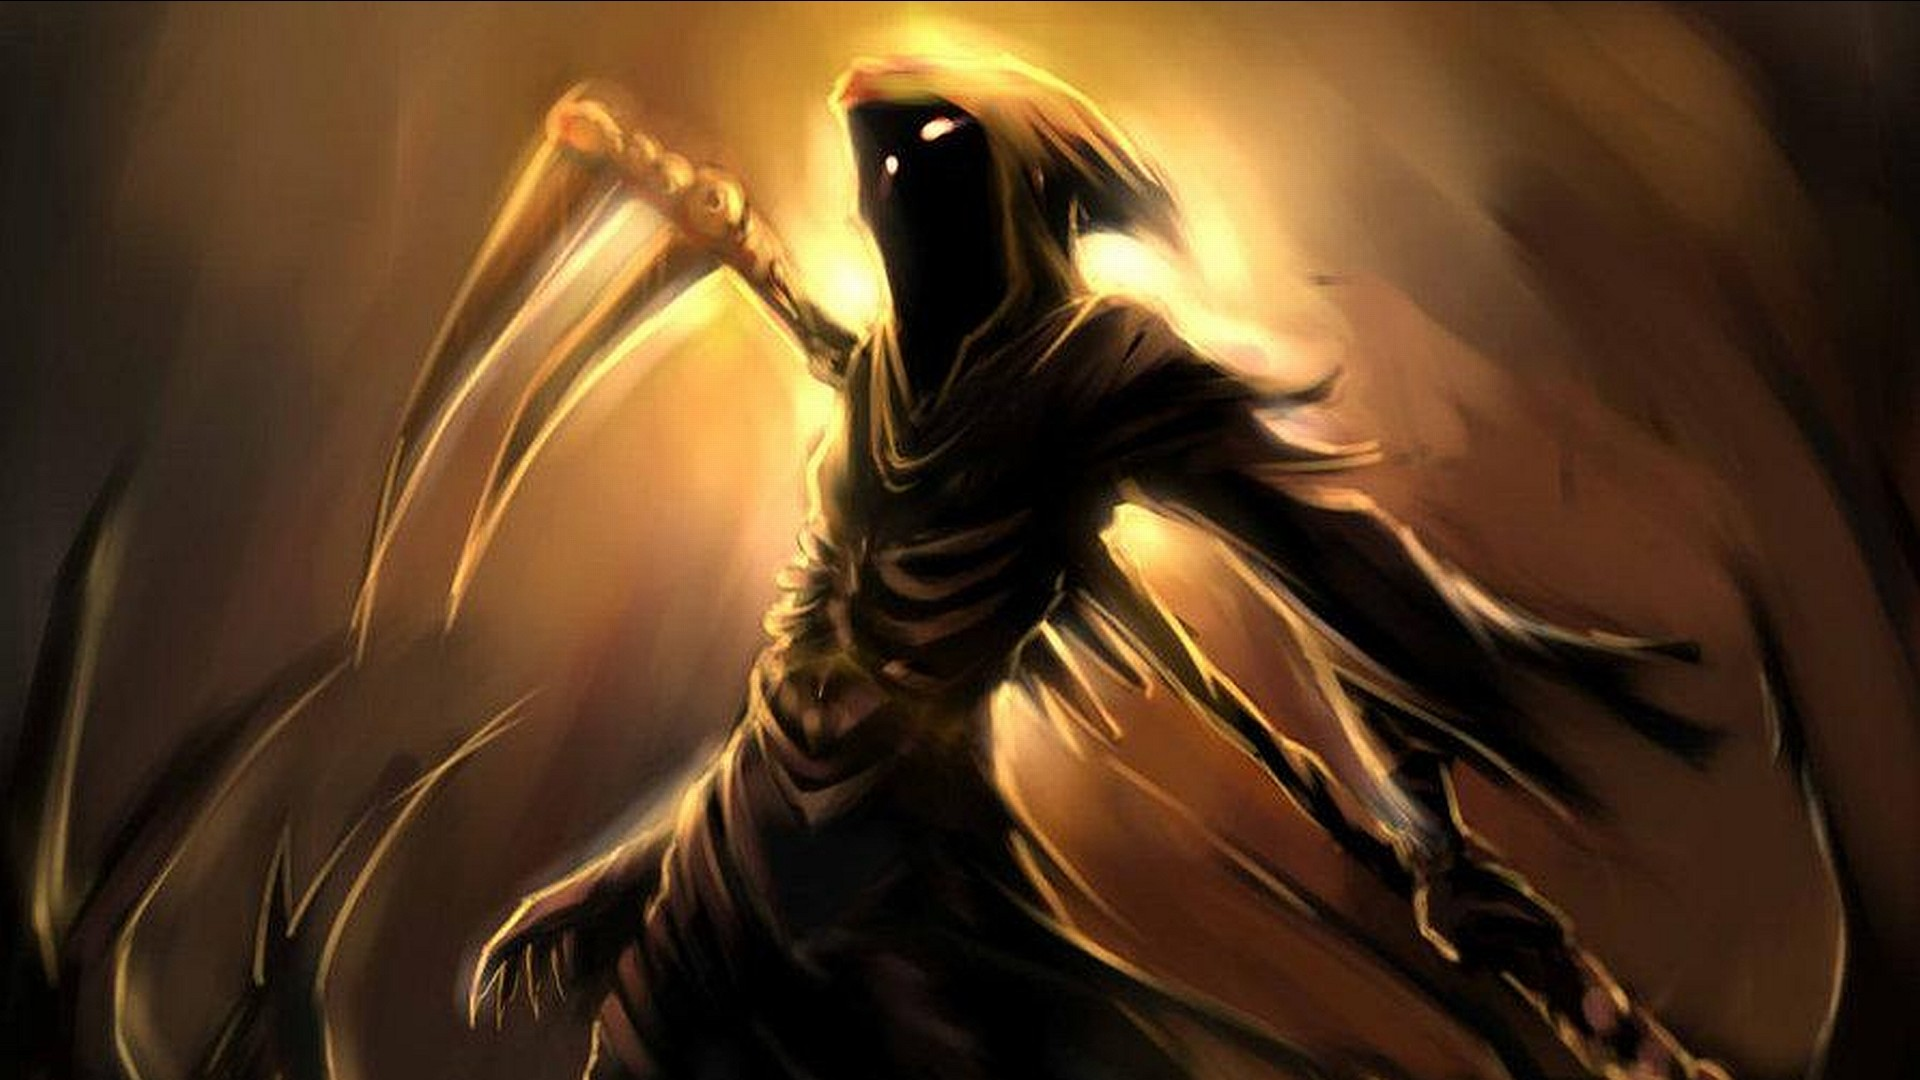 Res: 1920x1080, Grim-reaper-wallpaper.jpg